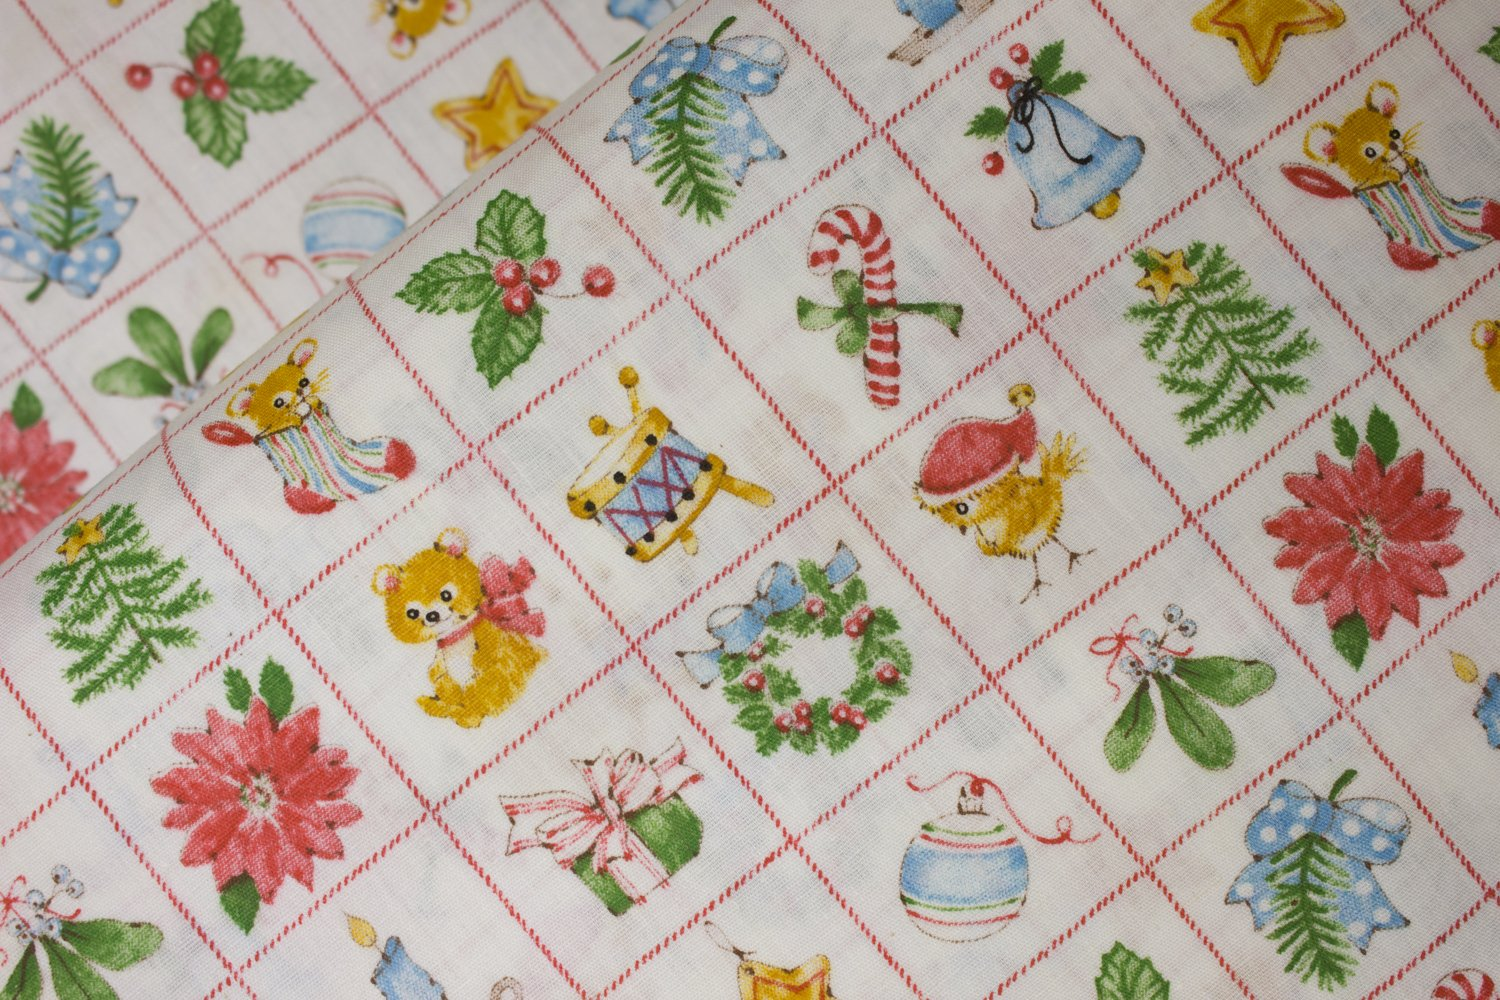 Squares with Christmas Icons:  Holly, Wreath, Tree, Poinsettia, Ornament, Star, Bell, Candy Cane, Mistletoe